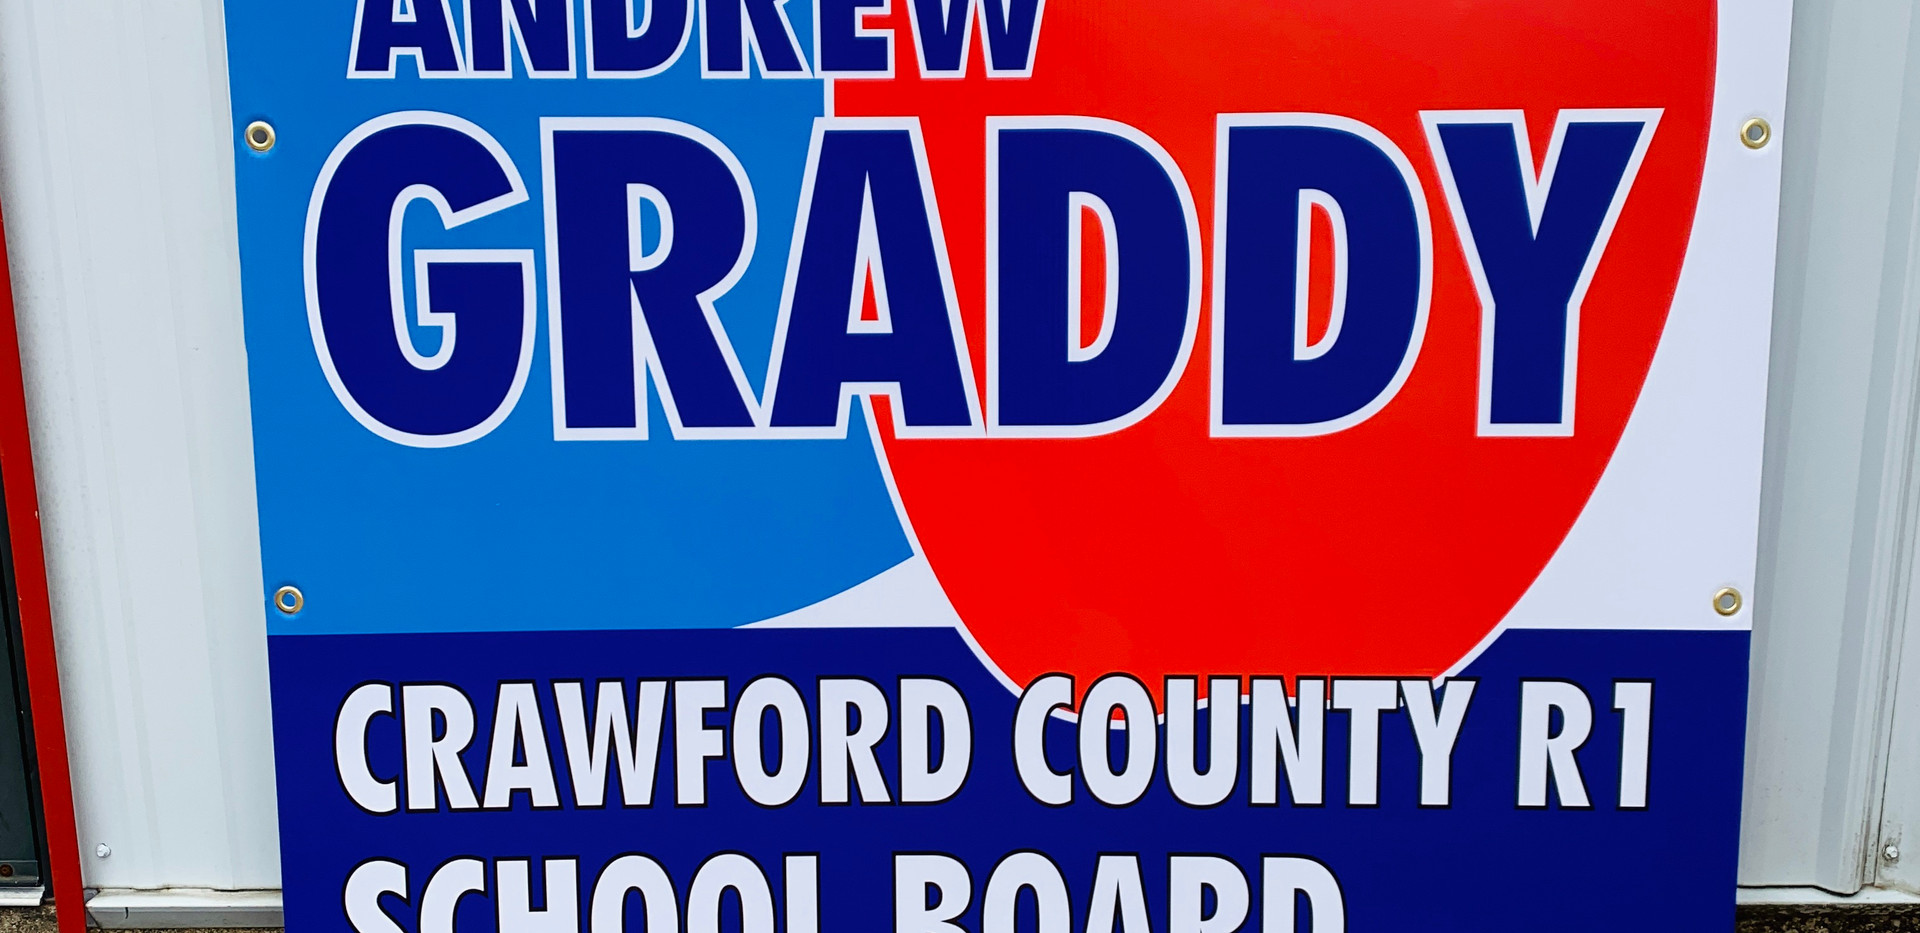 School Board Election Sign